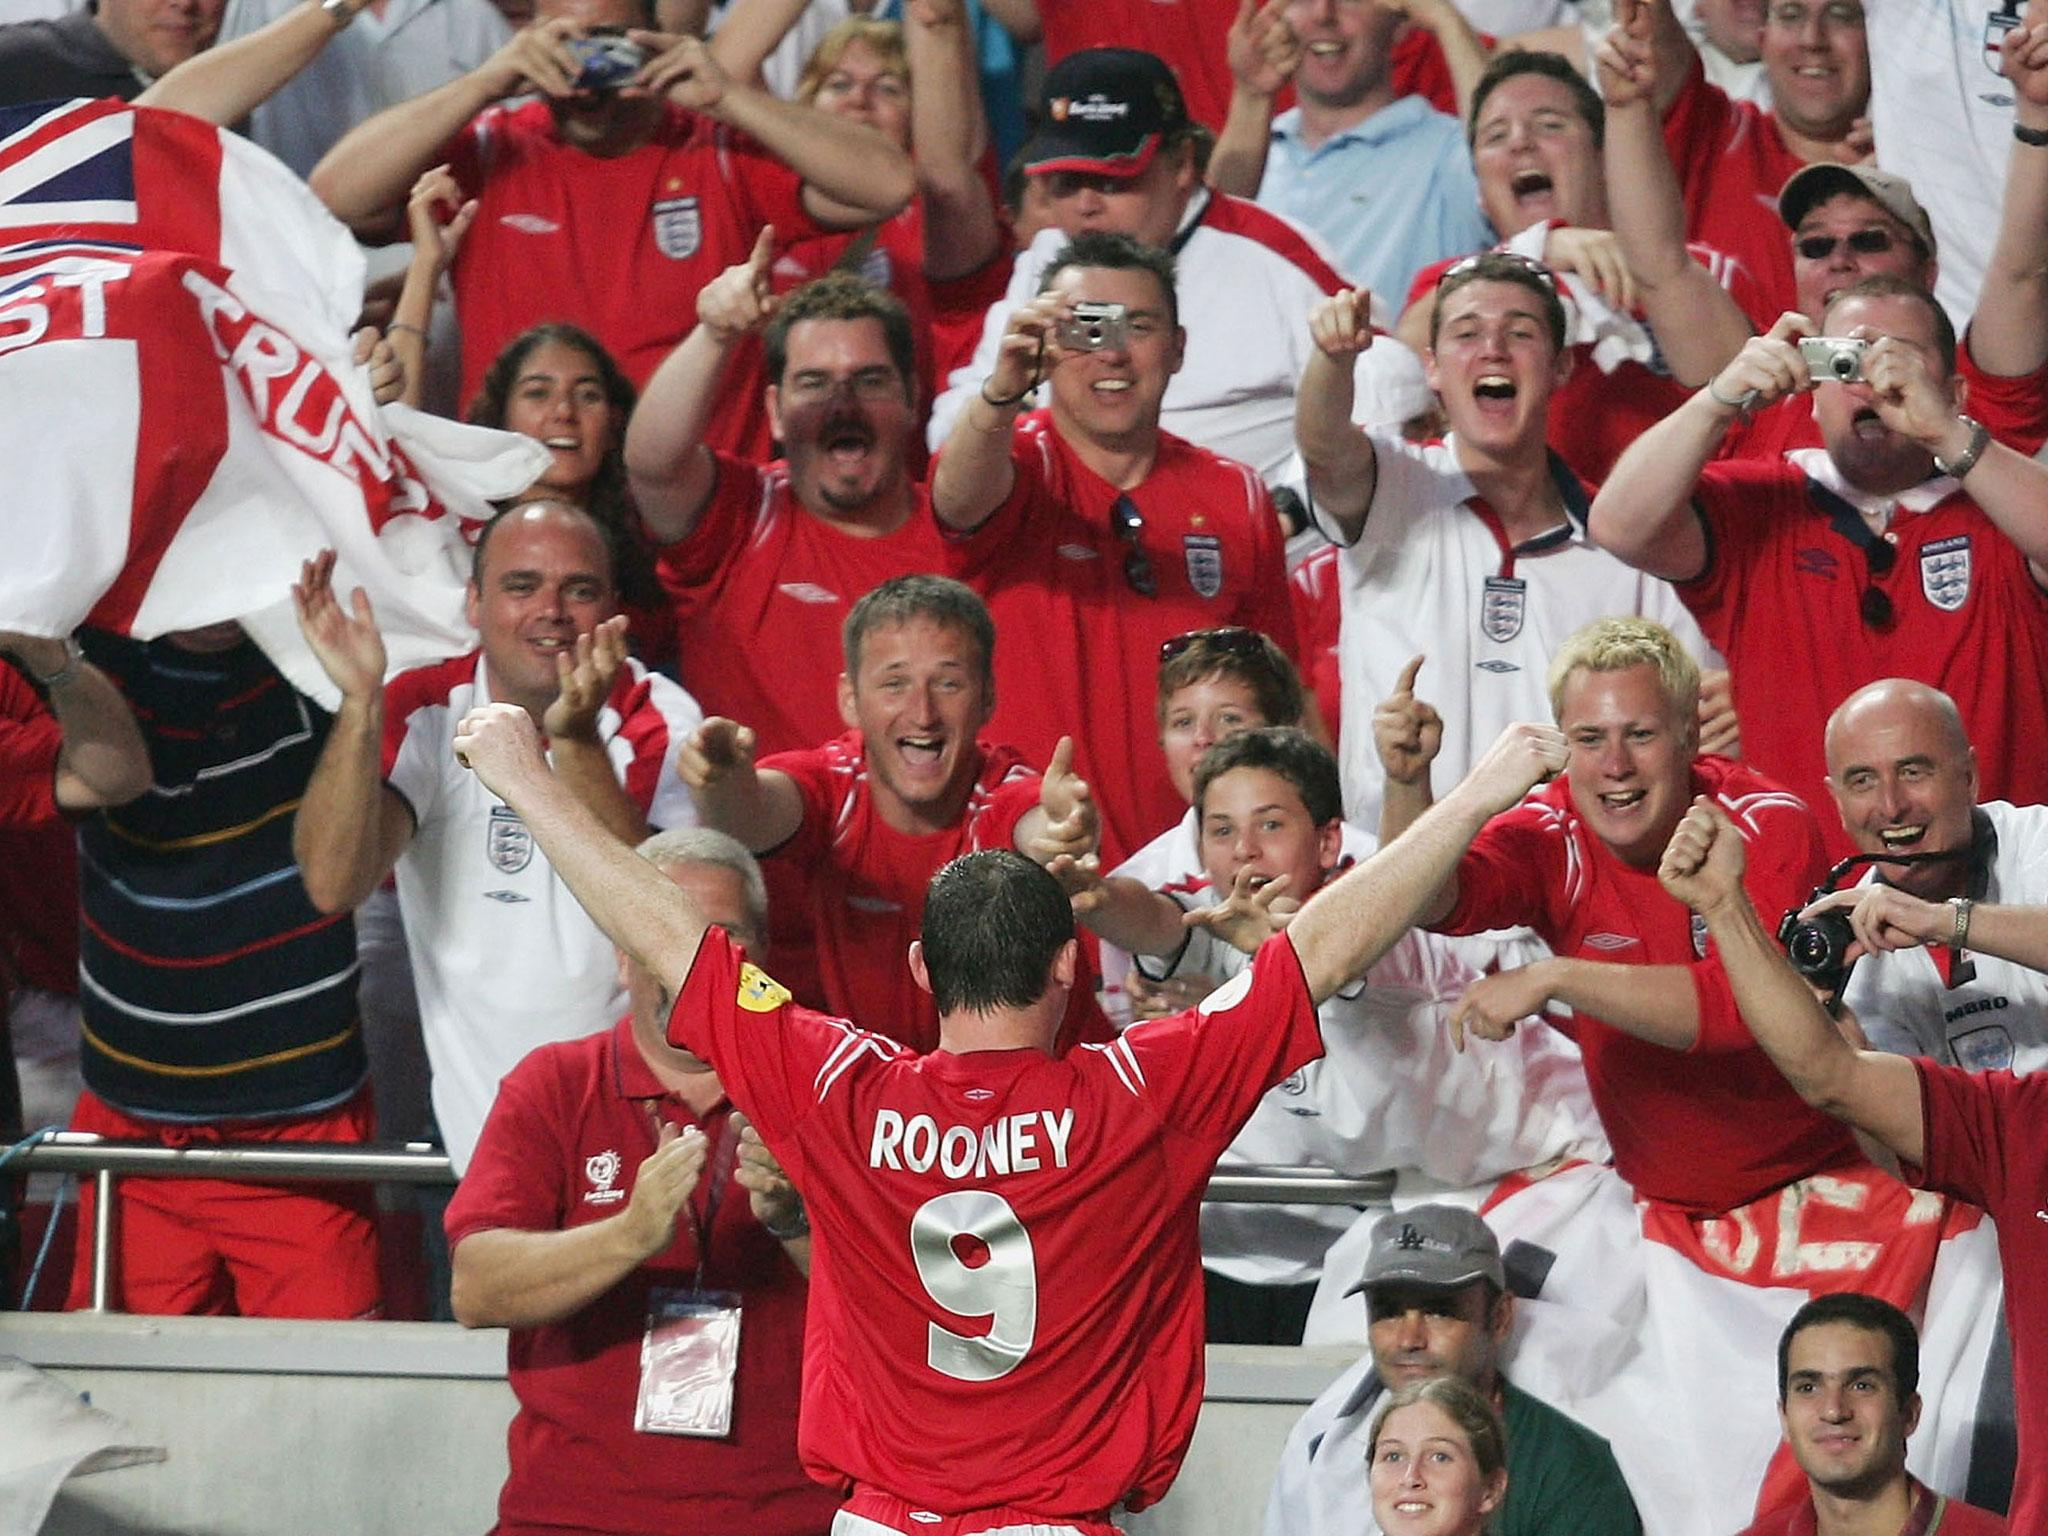 Wayne Rooney is an England great but regretfully a career with so many goals had so few tournament moments